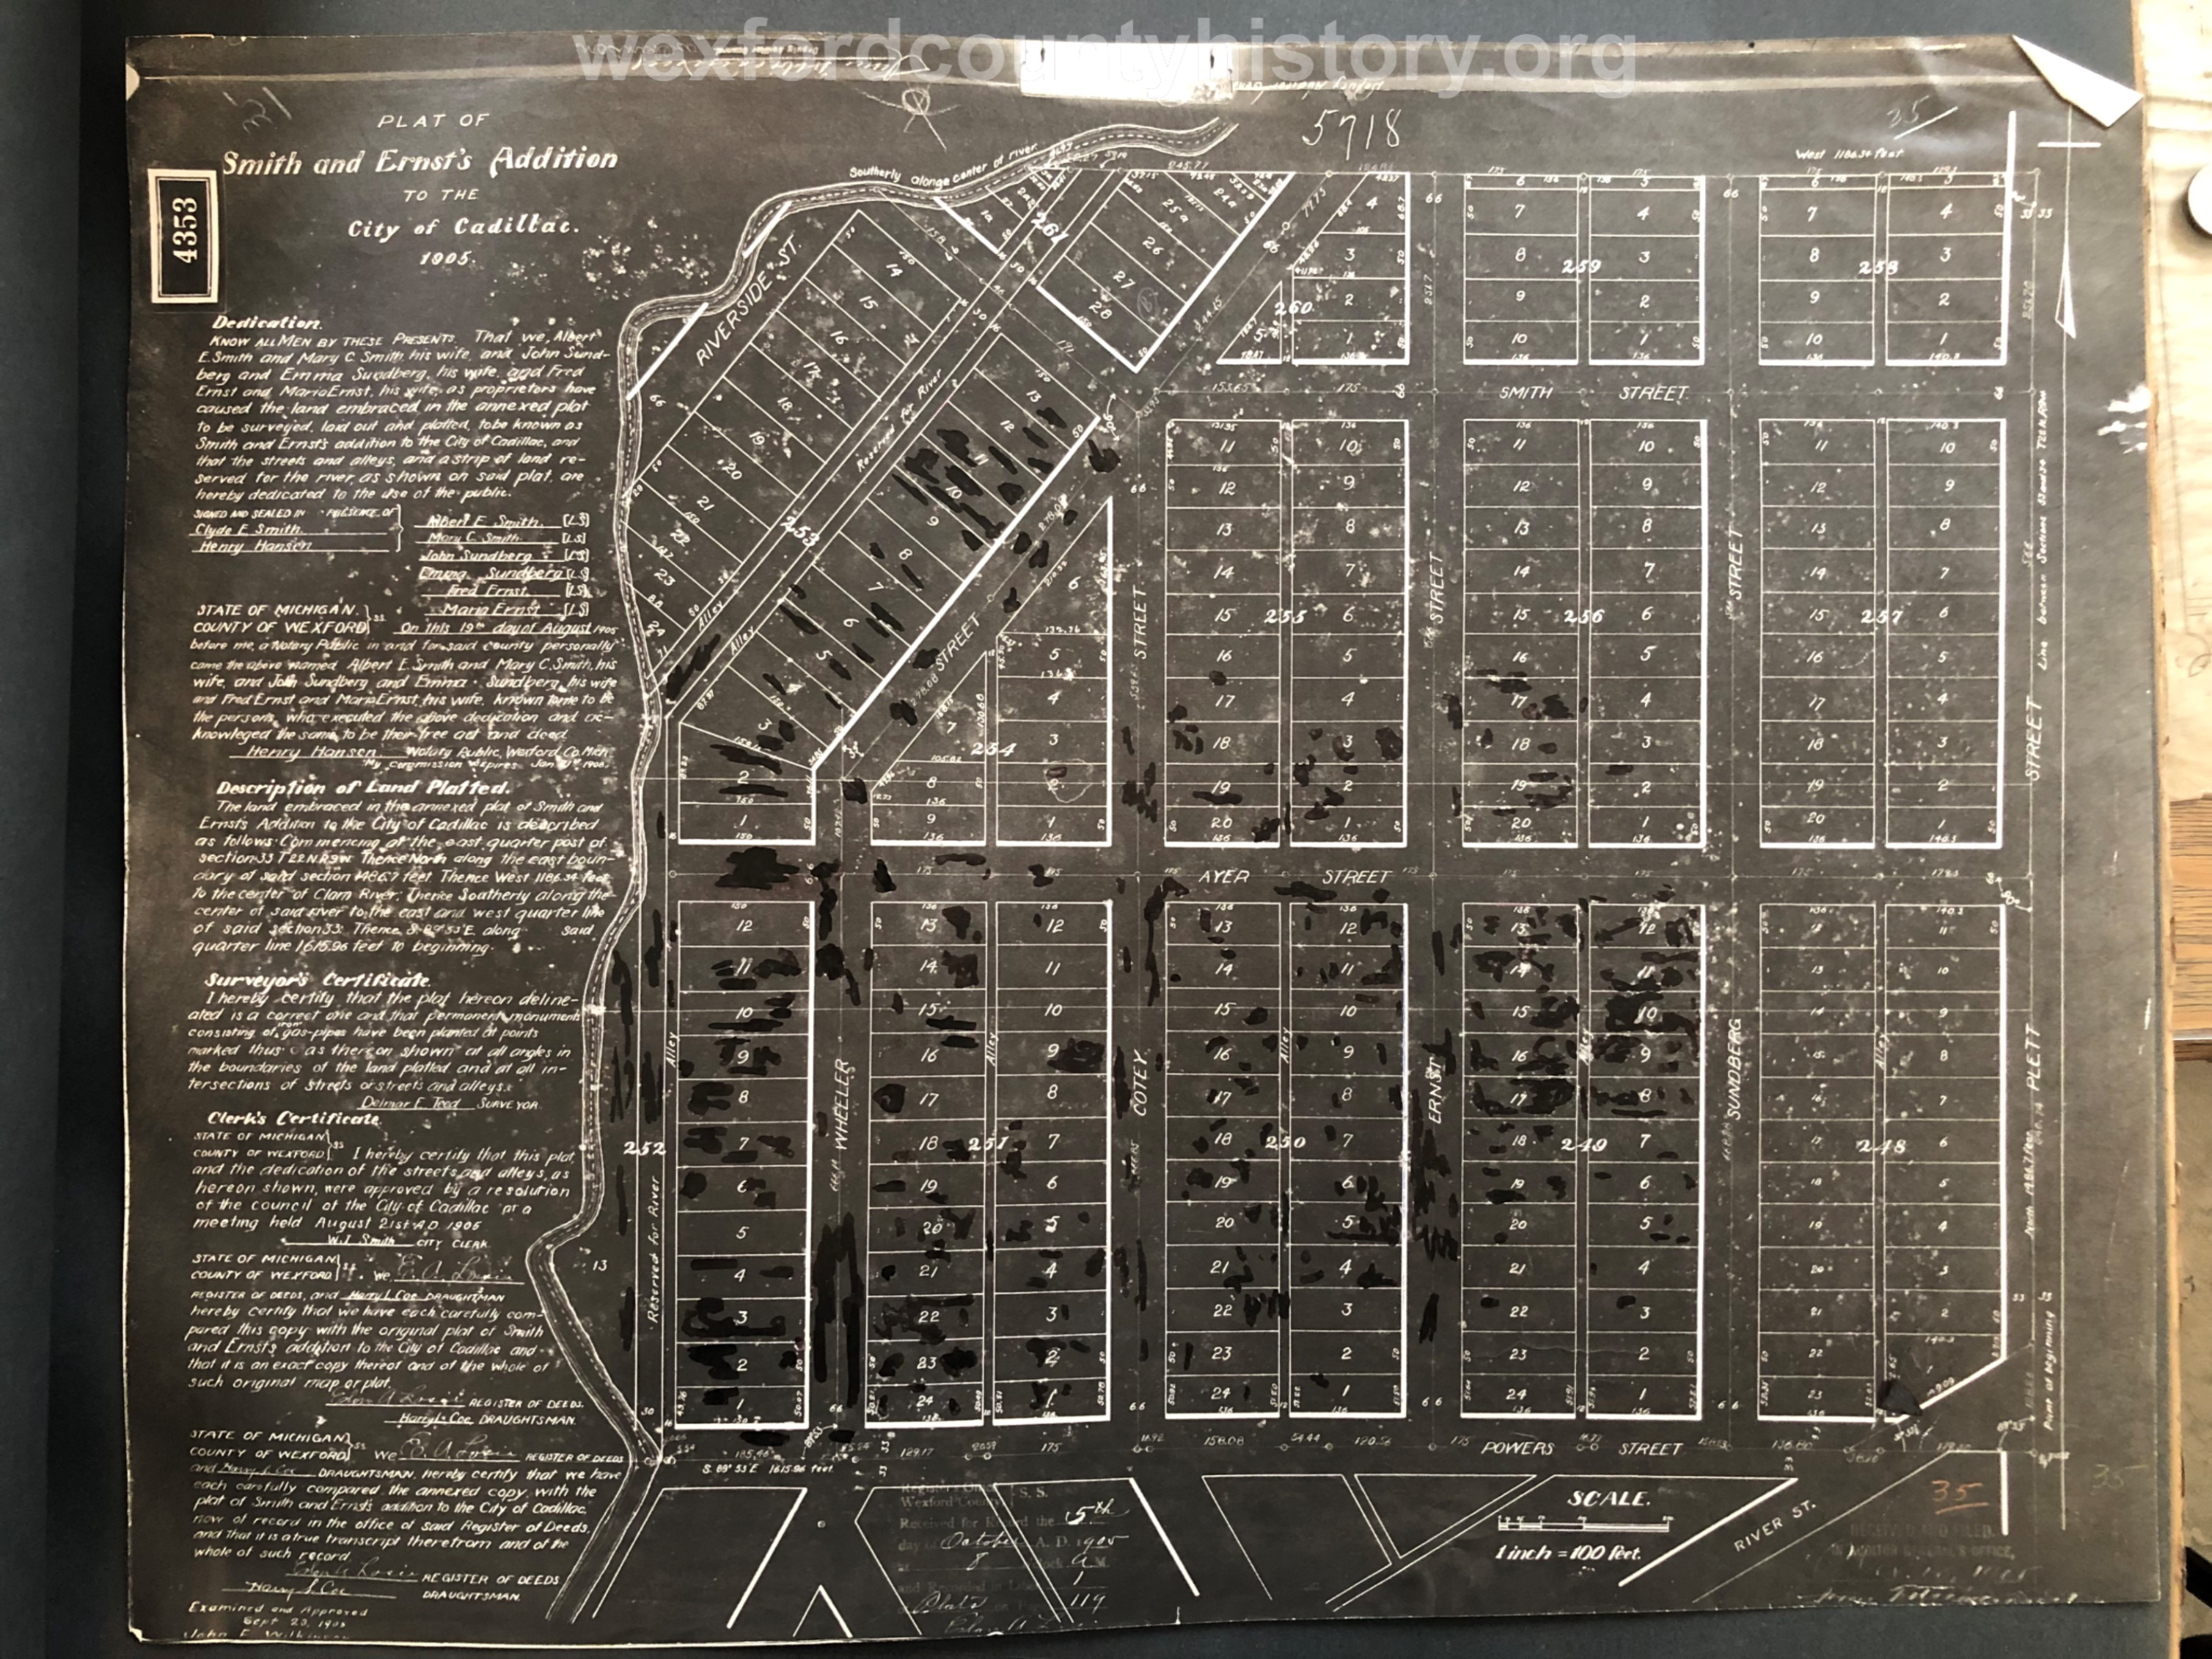 1905 - Smith And Ernst's Addition To The City Of Cadillac